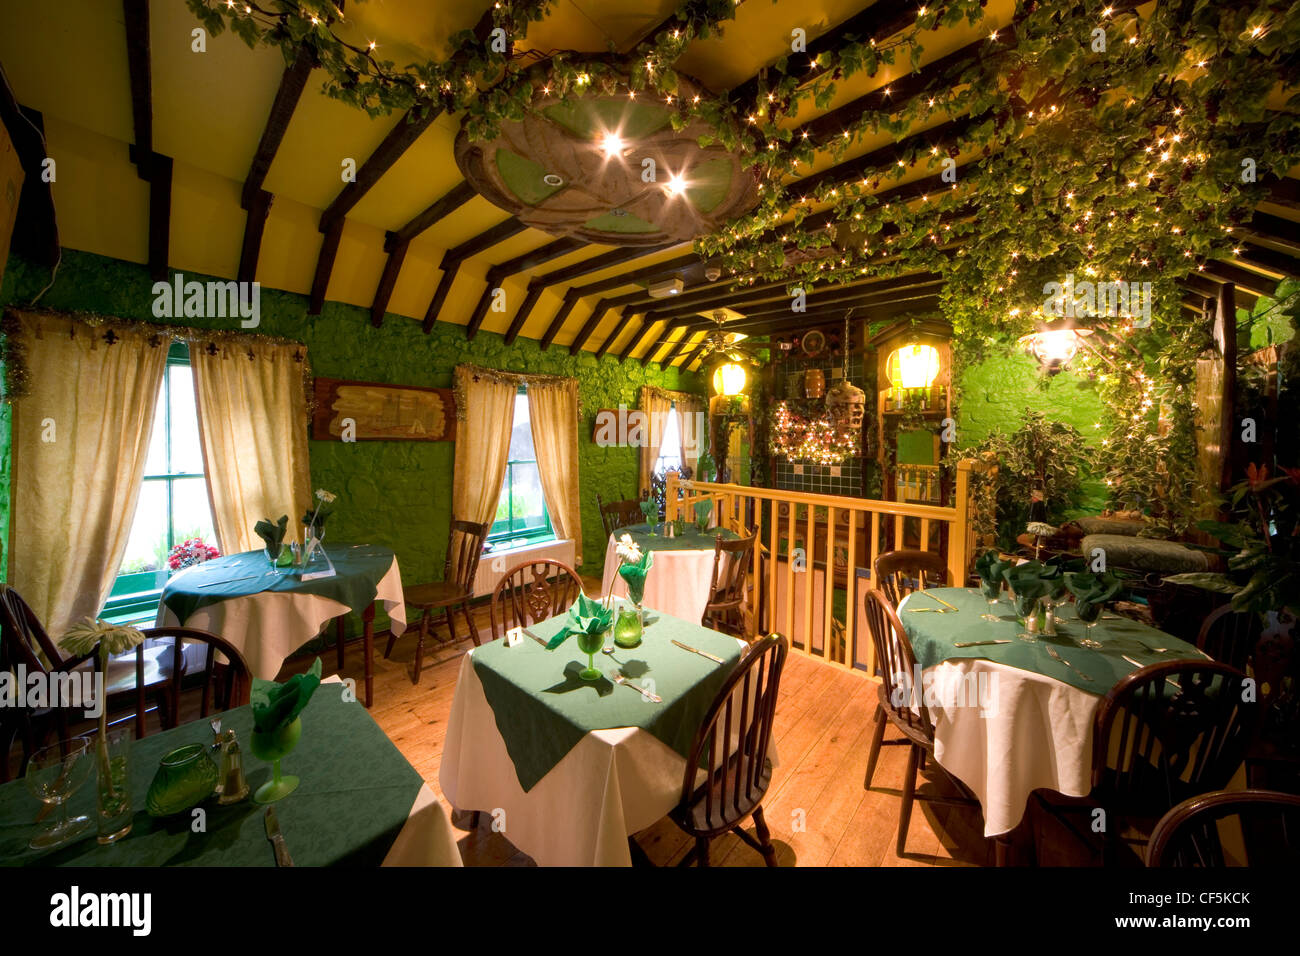 internal view of the traditional welsh restaurant bwyty ogof y